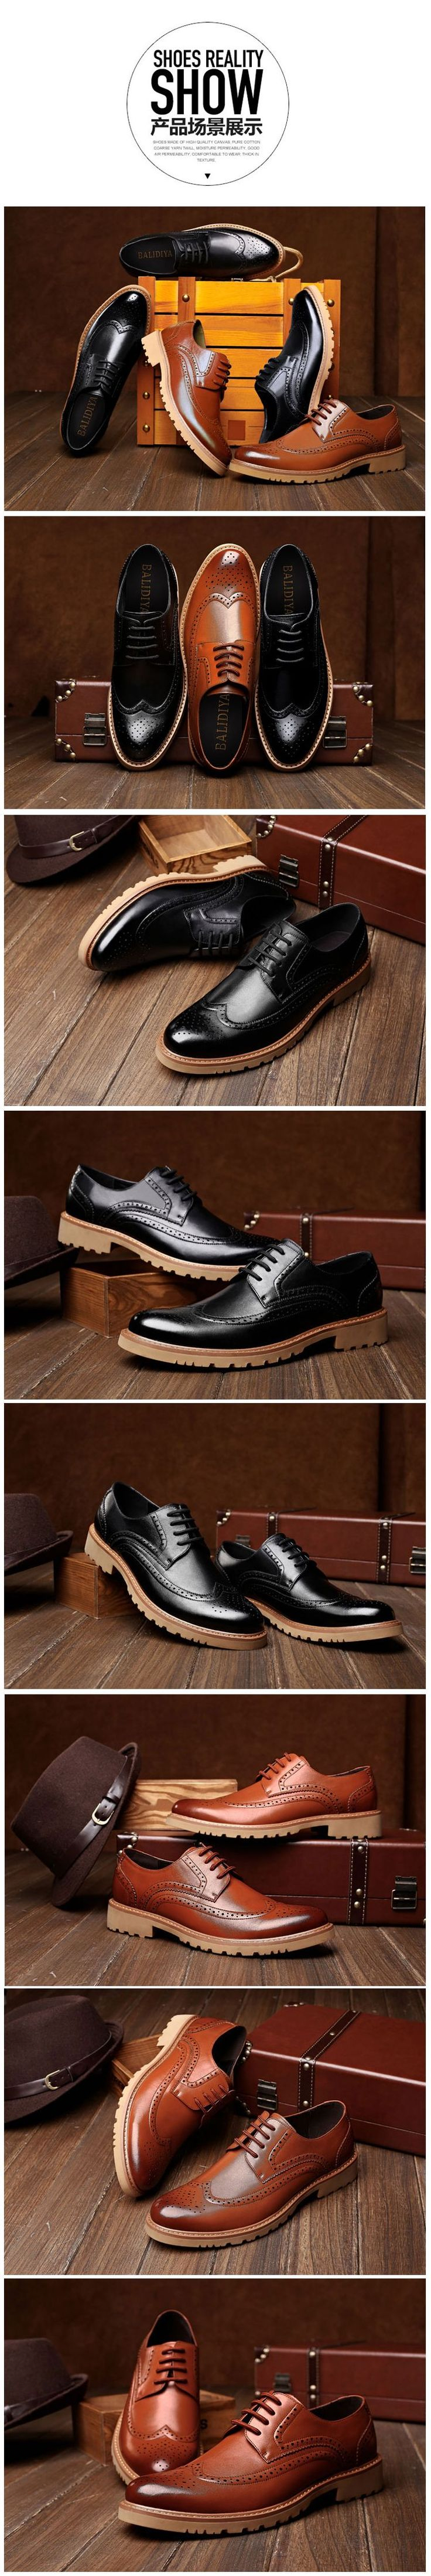 Baroque Oxfords Retro Brogues Carving Elevator Dress shoes Height Increasing 8cm / 3.15inches